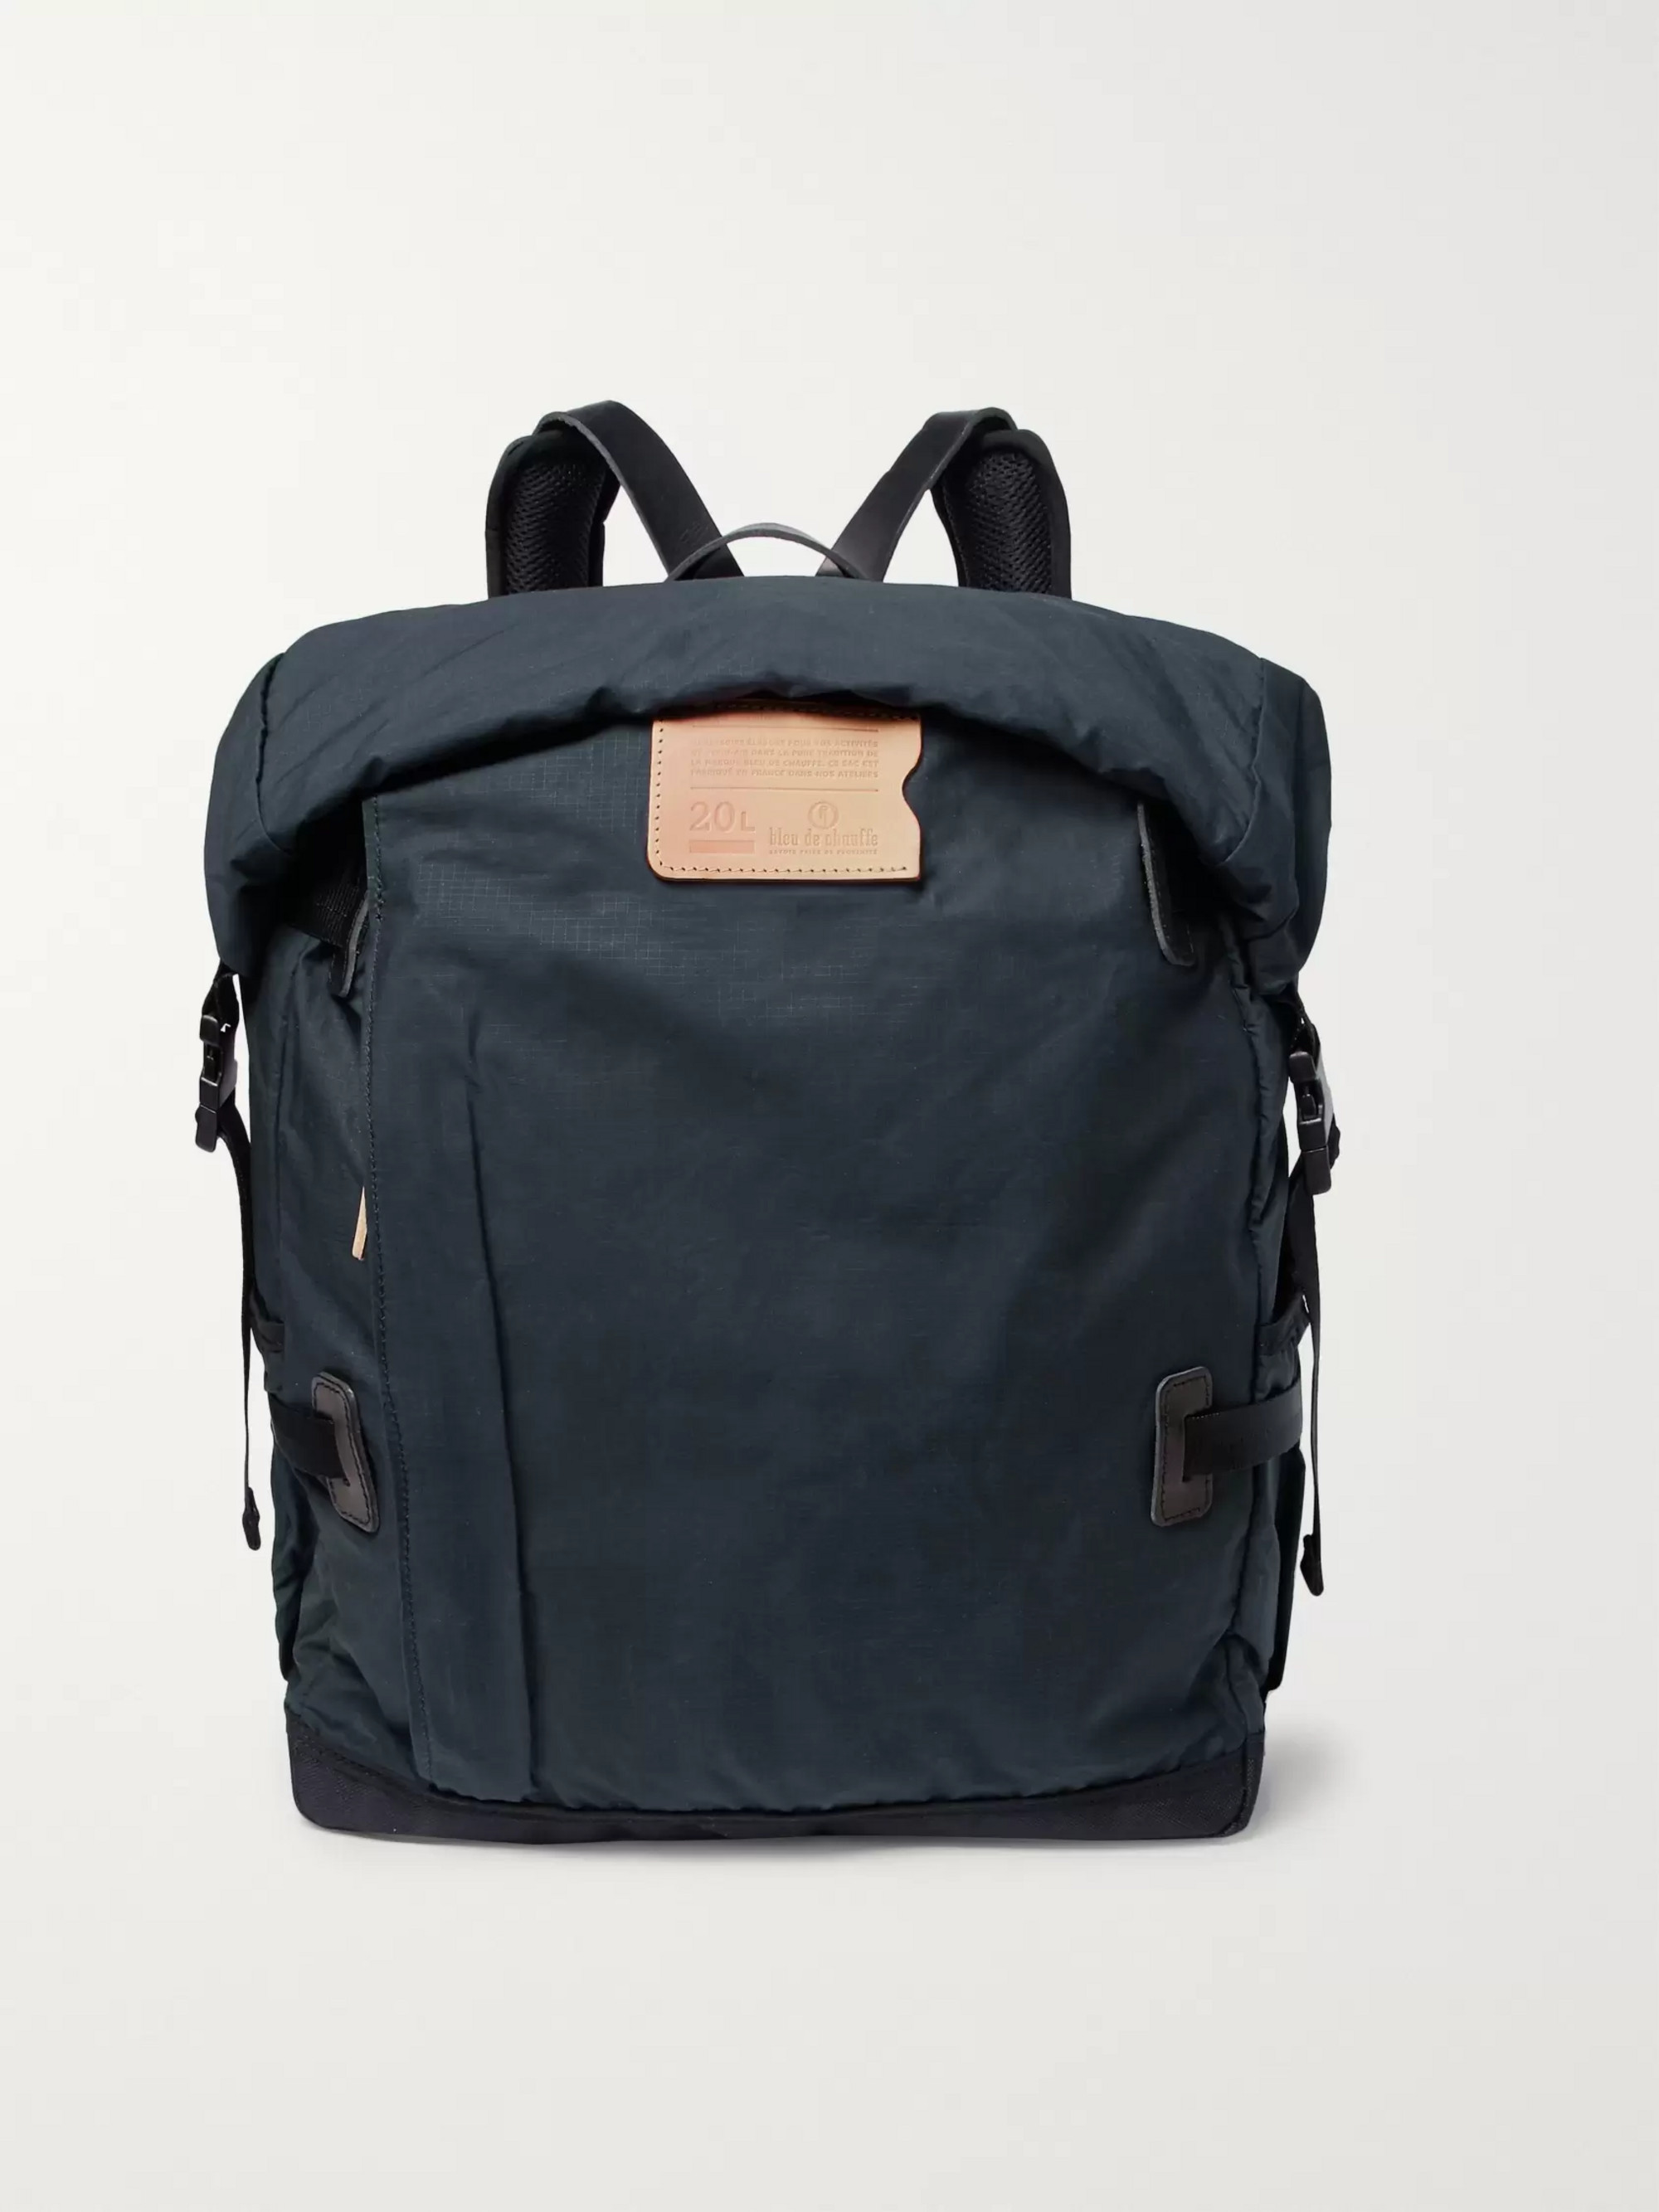 Bleu de Chauffe Basile Leather-Trimmed Waxed-Cotton Ripstop Backpack